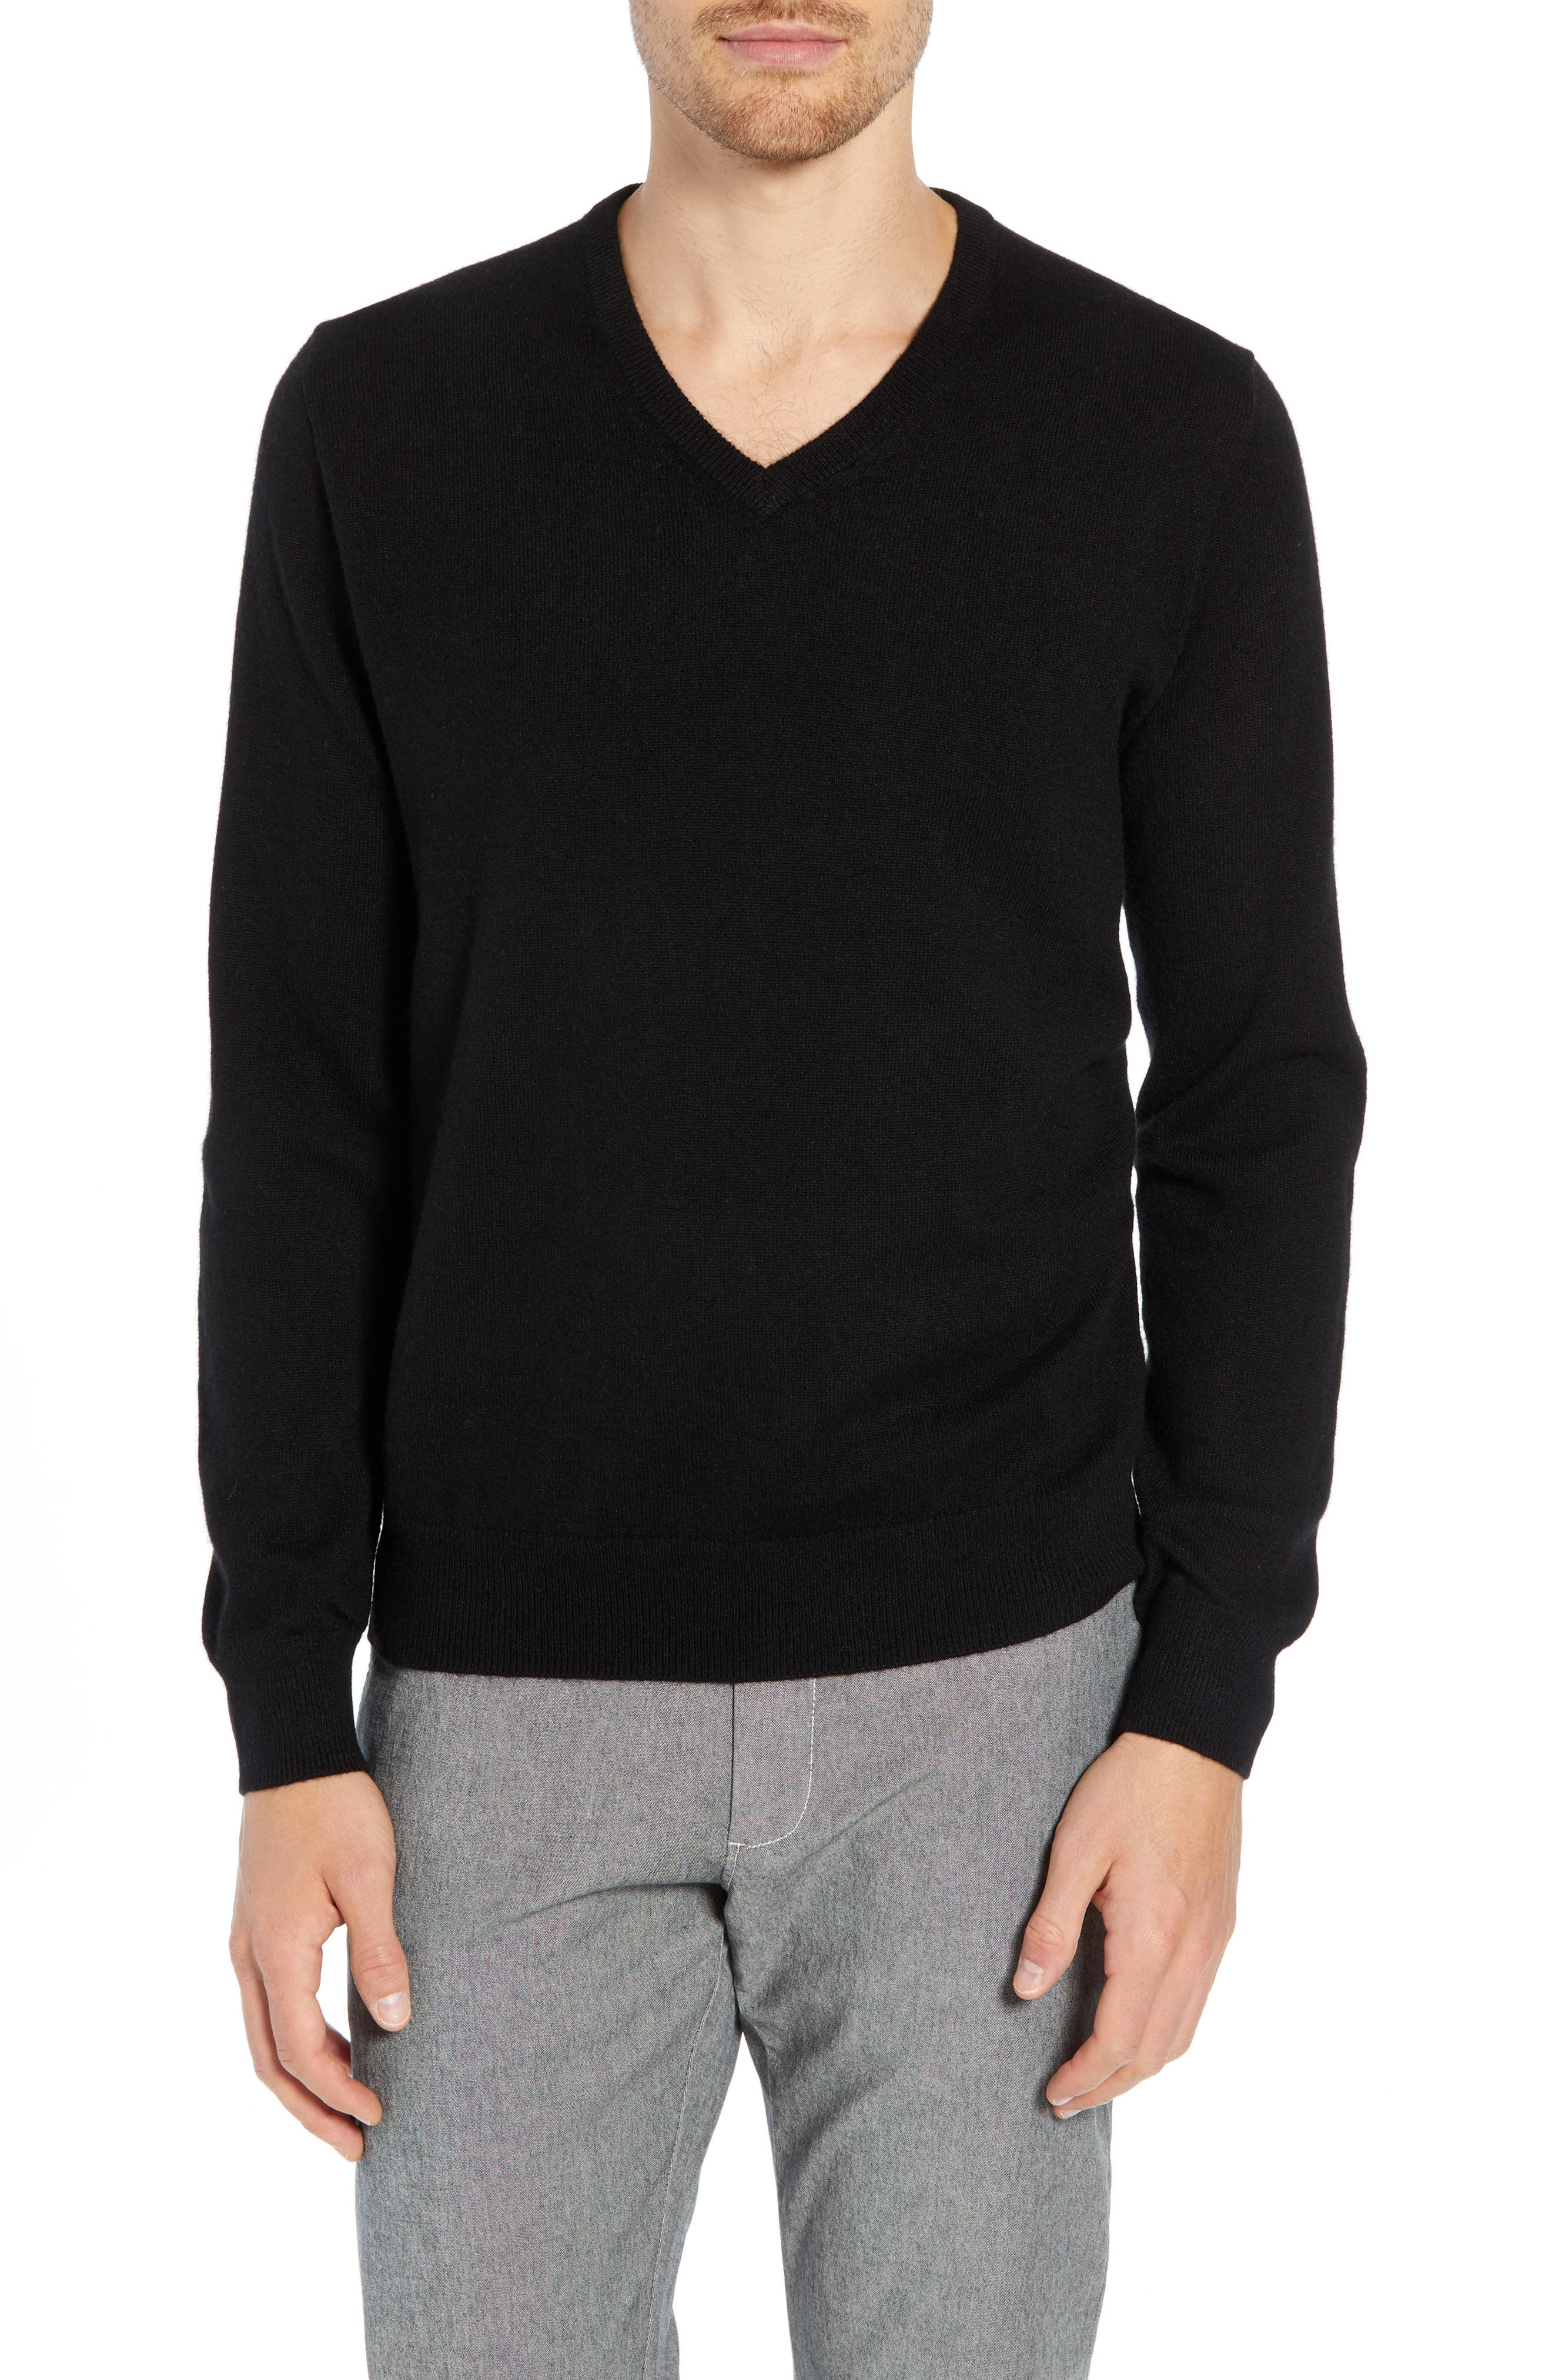 Everyday Cashmere Regular Fit V-Neck Sweater,                             Main thumbnail 1, color,                             BLACK